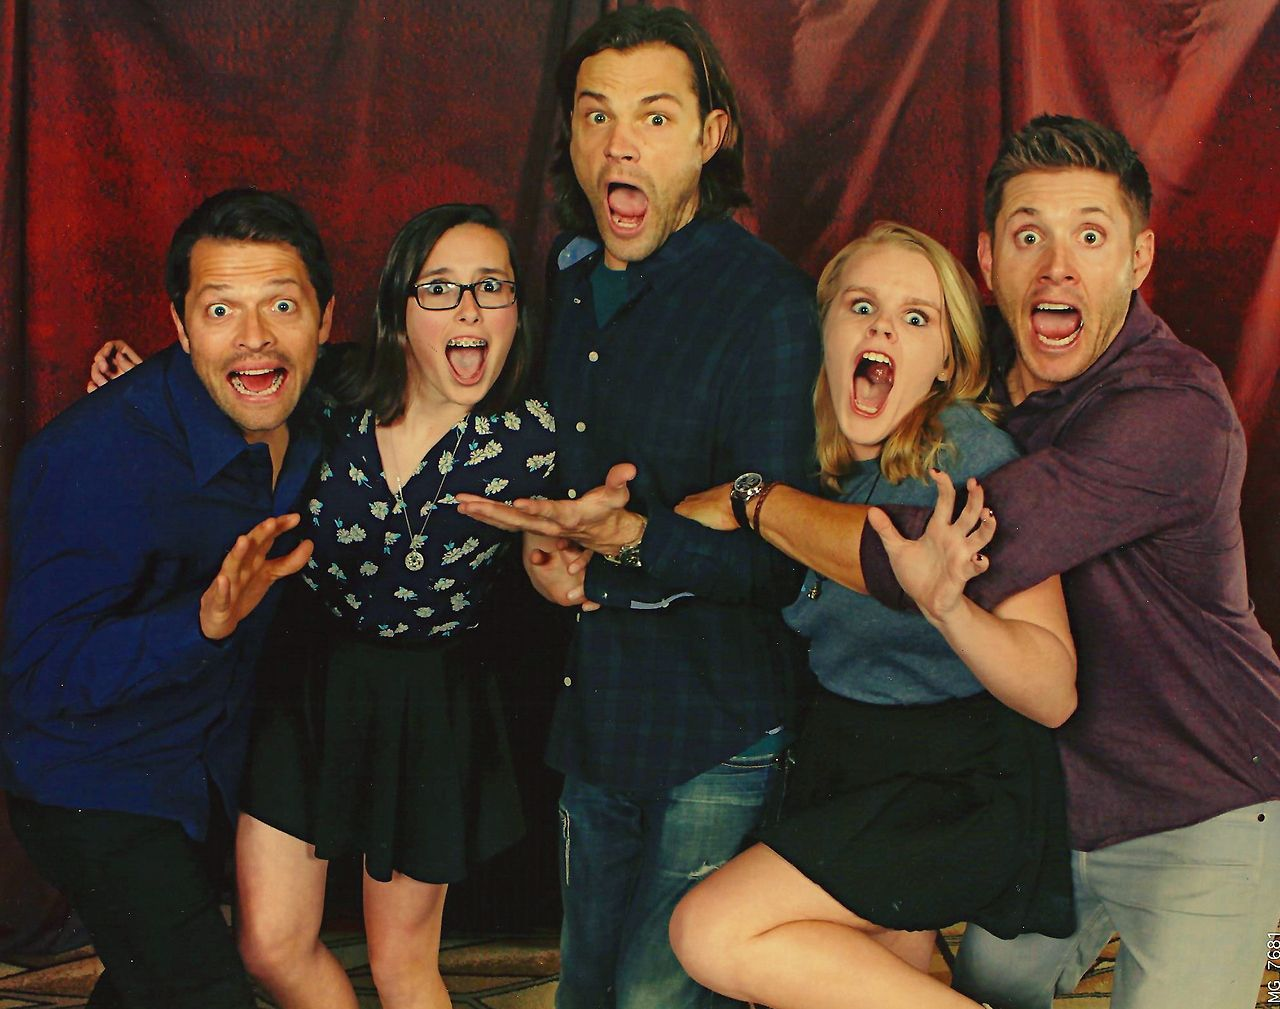 Best Supernatural Photo Op Poses Images On Pinterest Actors - 22 side splitting haunted house reactions